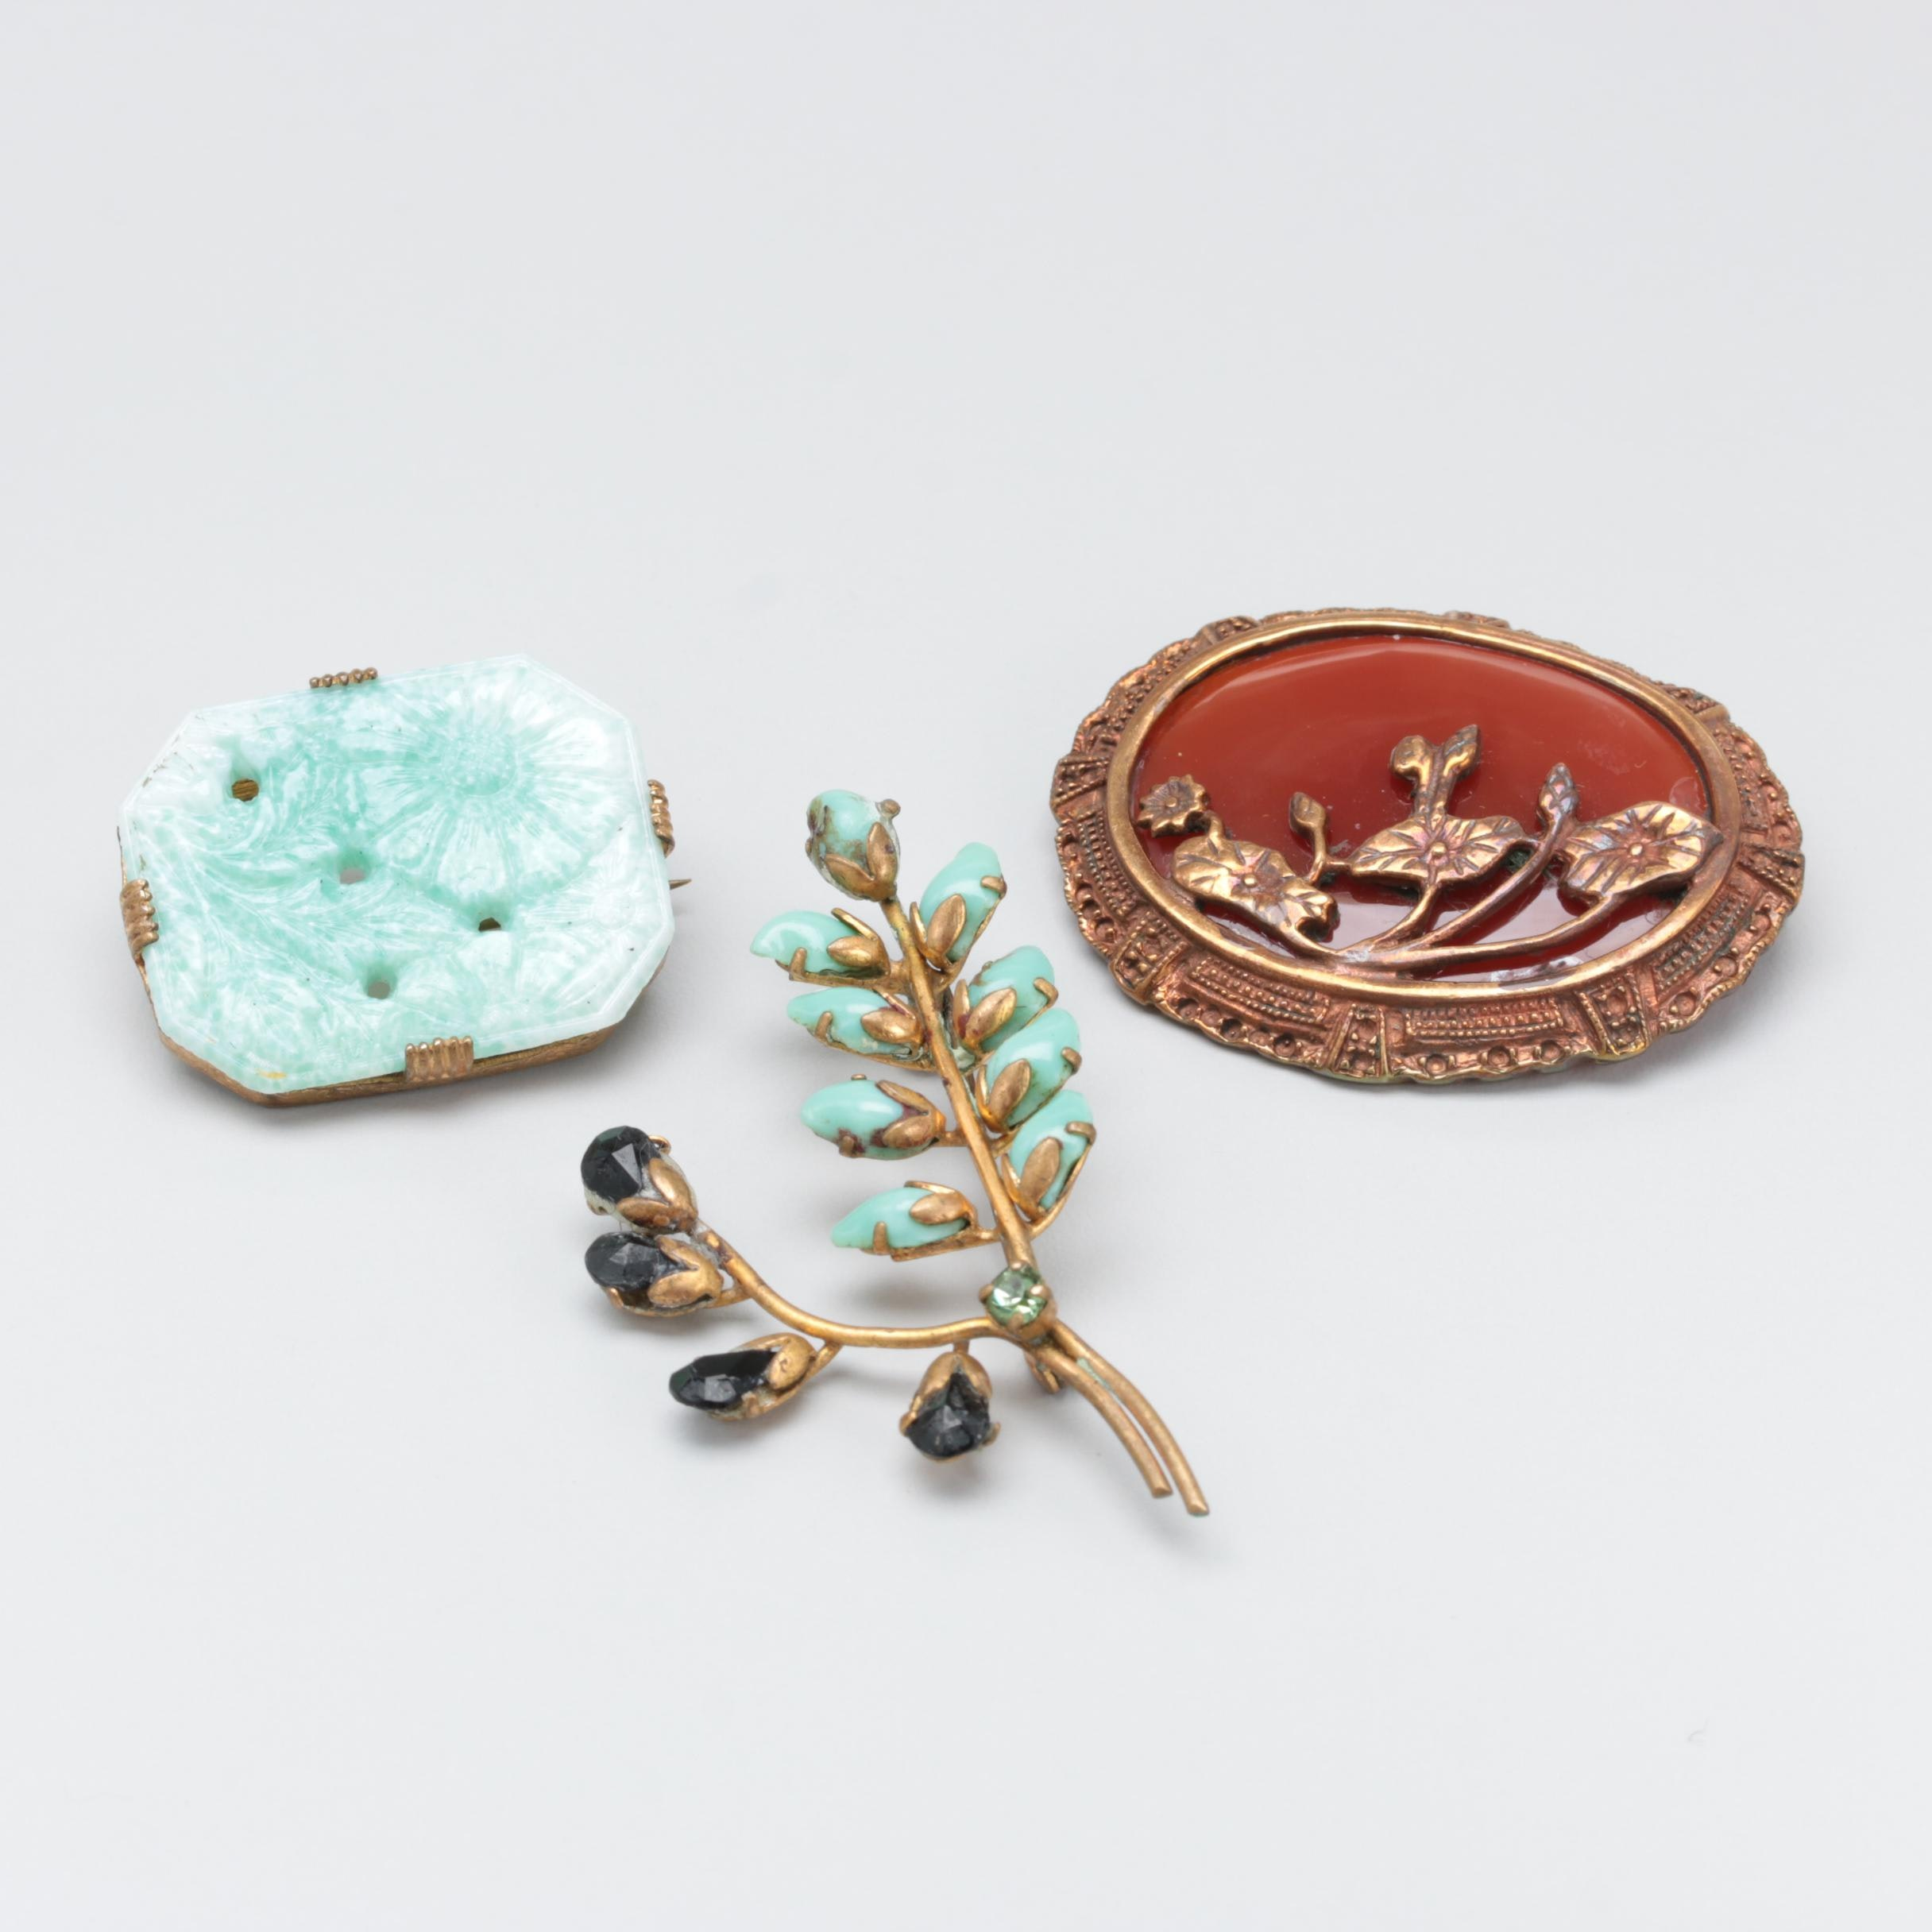 Collection of Vintage Victorian Floral Brooches including Poured, Pressed Glass